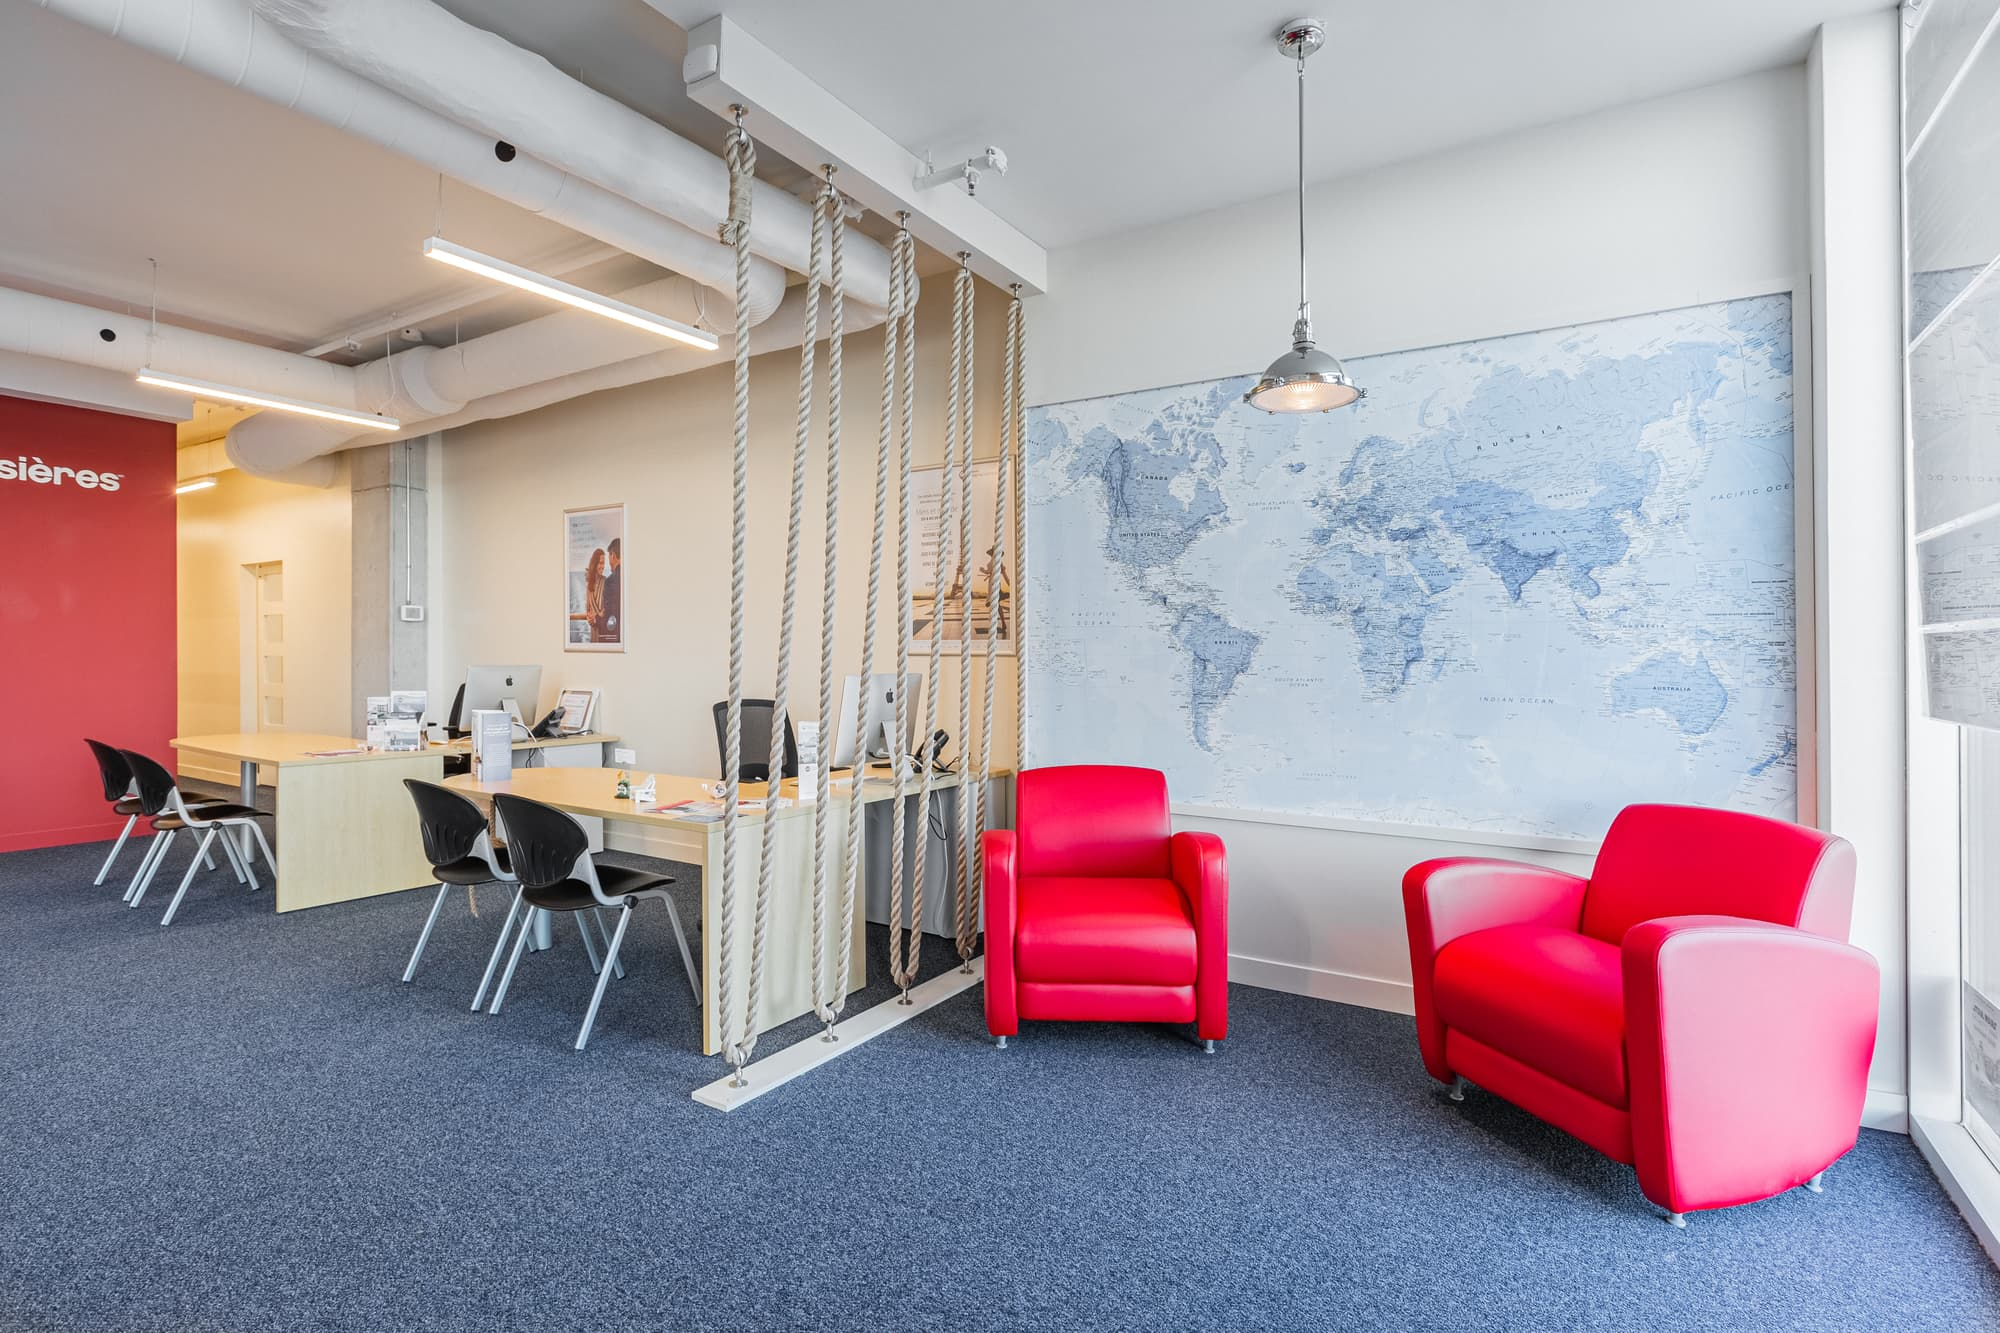 office construction with a rope wall, giant world map and red chairs